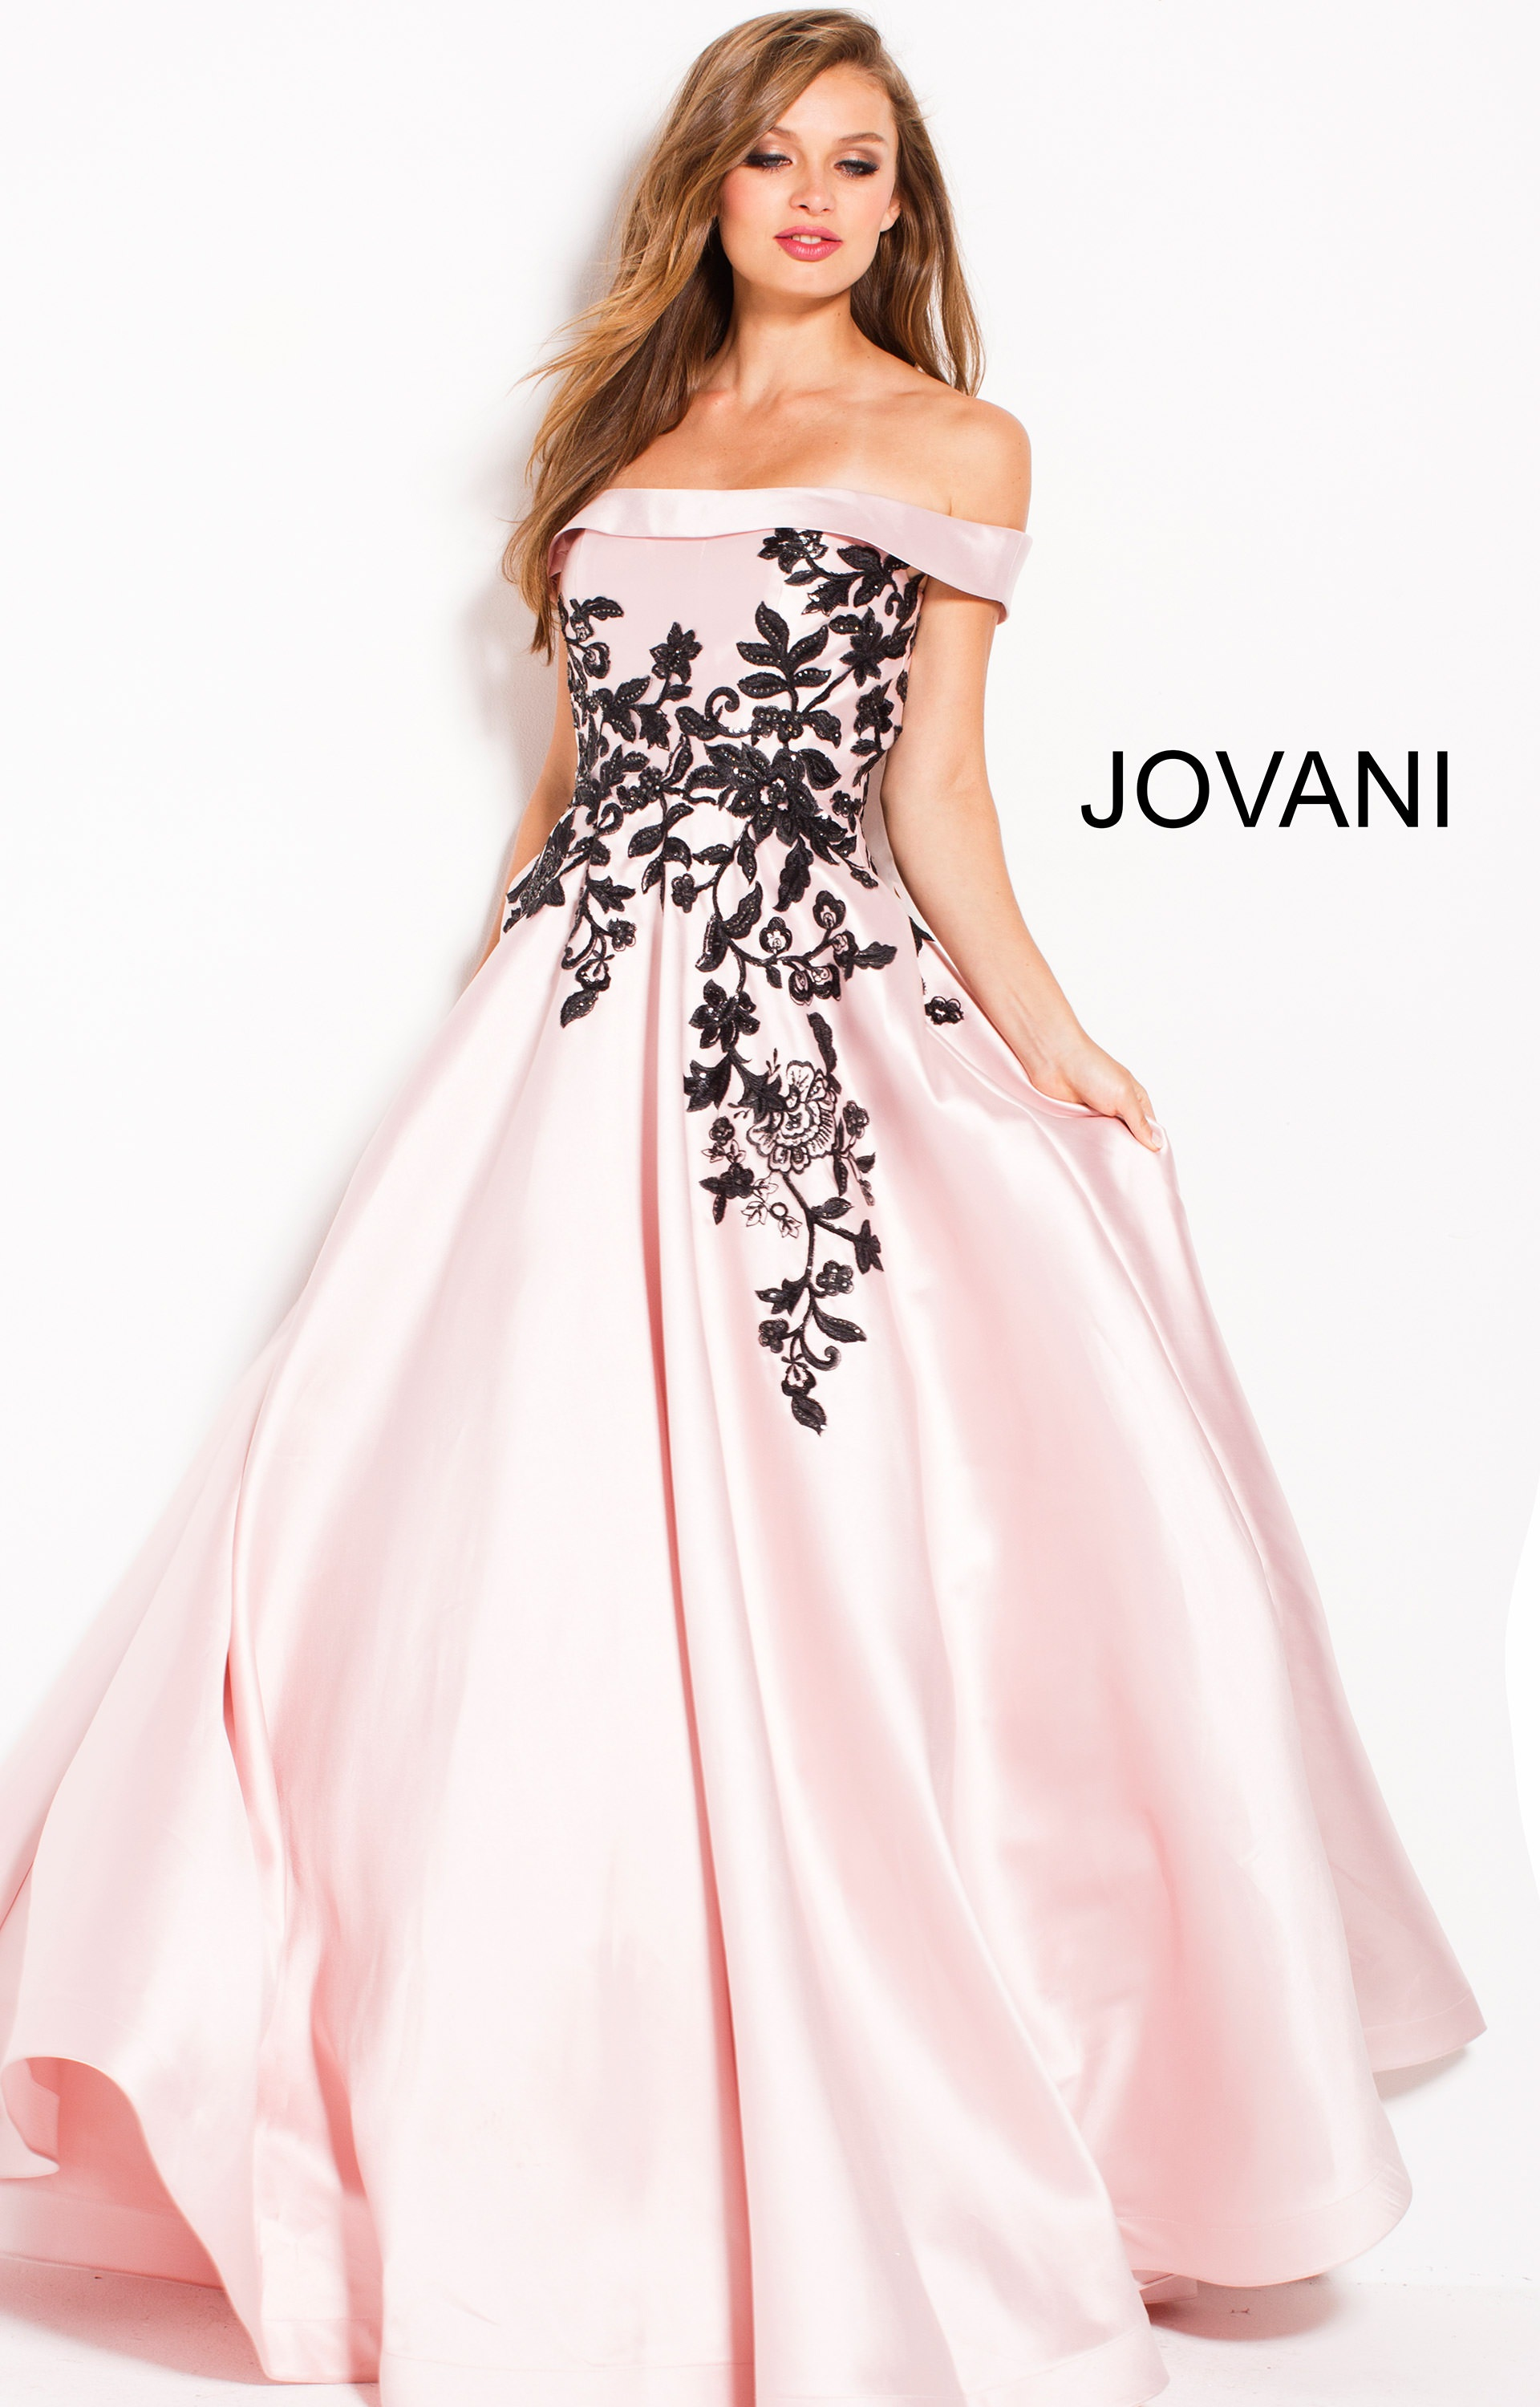 Jovani 61205 Off The Shoulder Ball Gown Dress Prom Dress